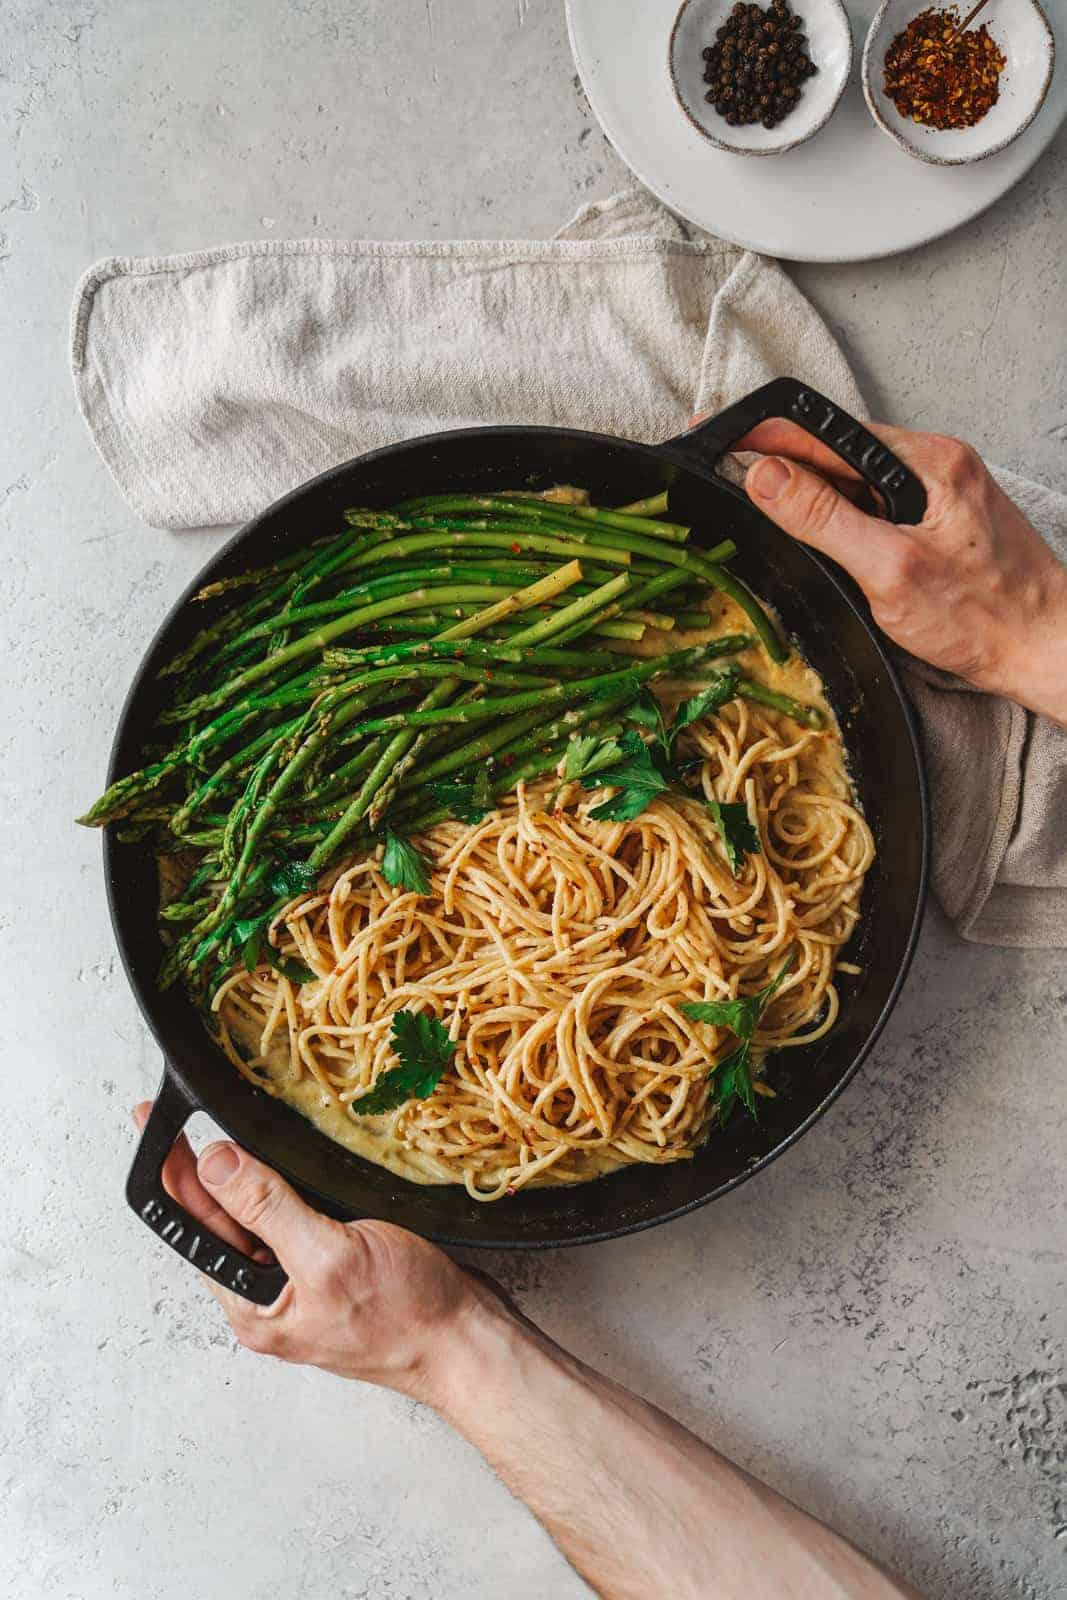 Big pan of spaghetti with asparagus and white wine spaghetti sauce.